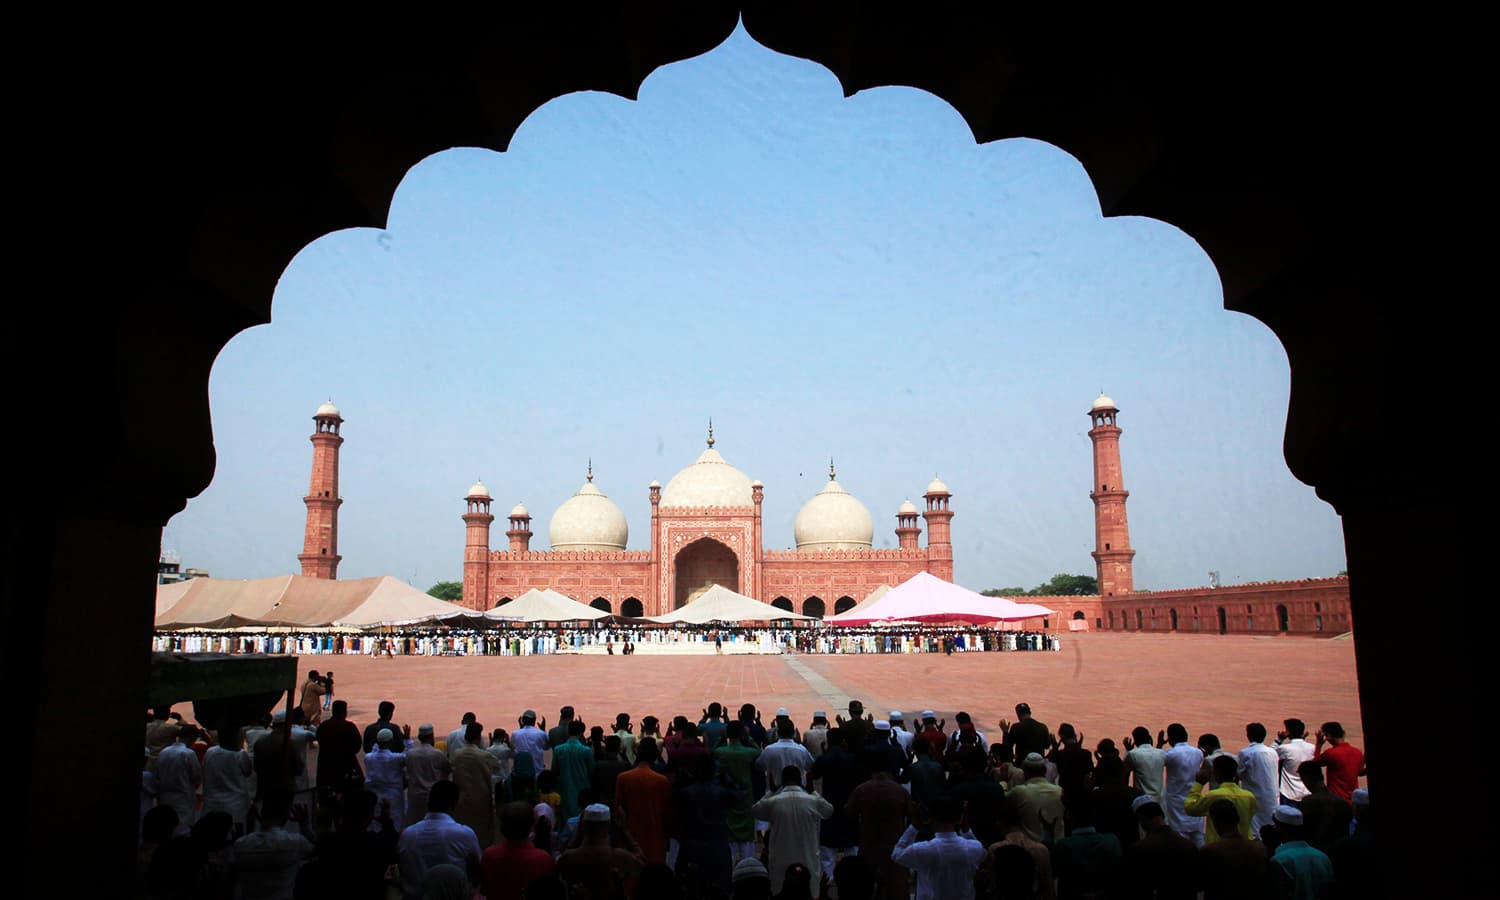 Men say their Eid prayers to mark the end of Ramzan at Badshahi mosque in Lahore. ─ Reuters